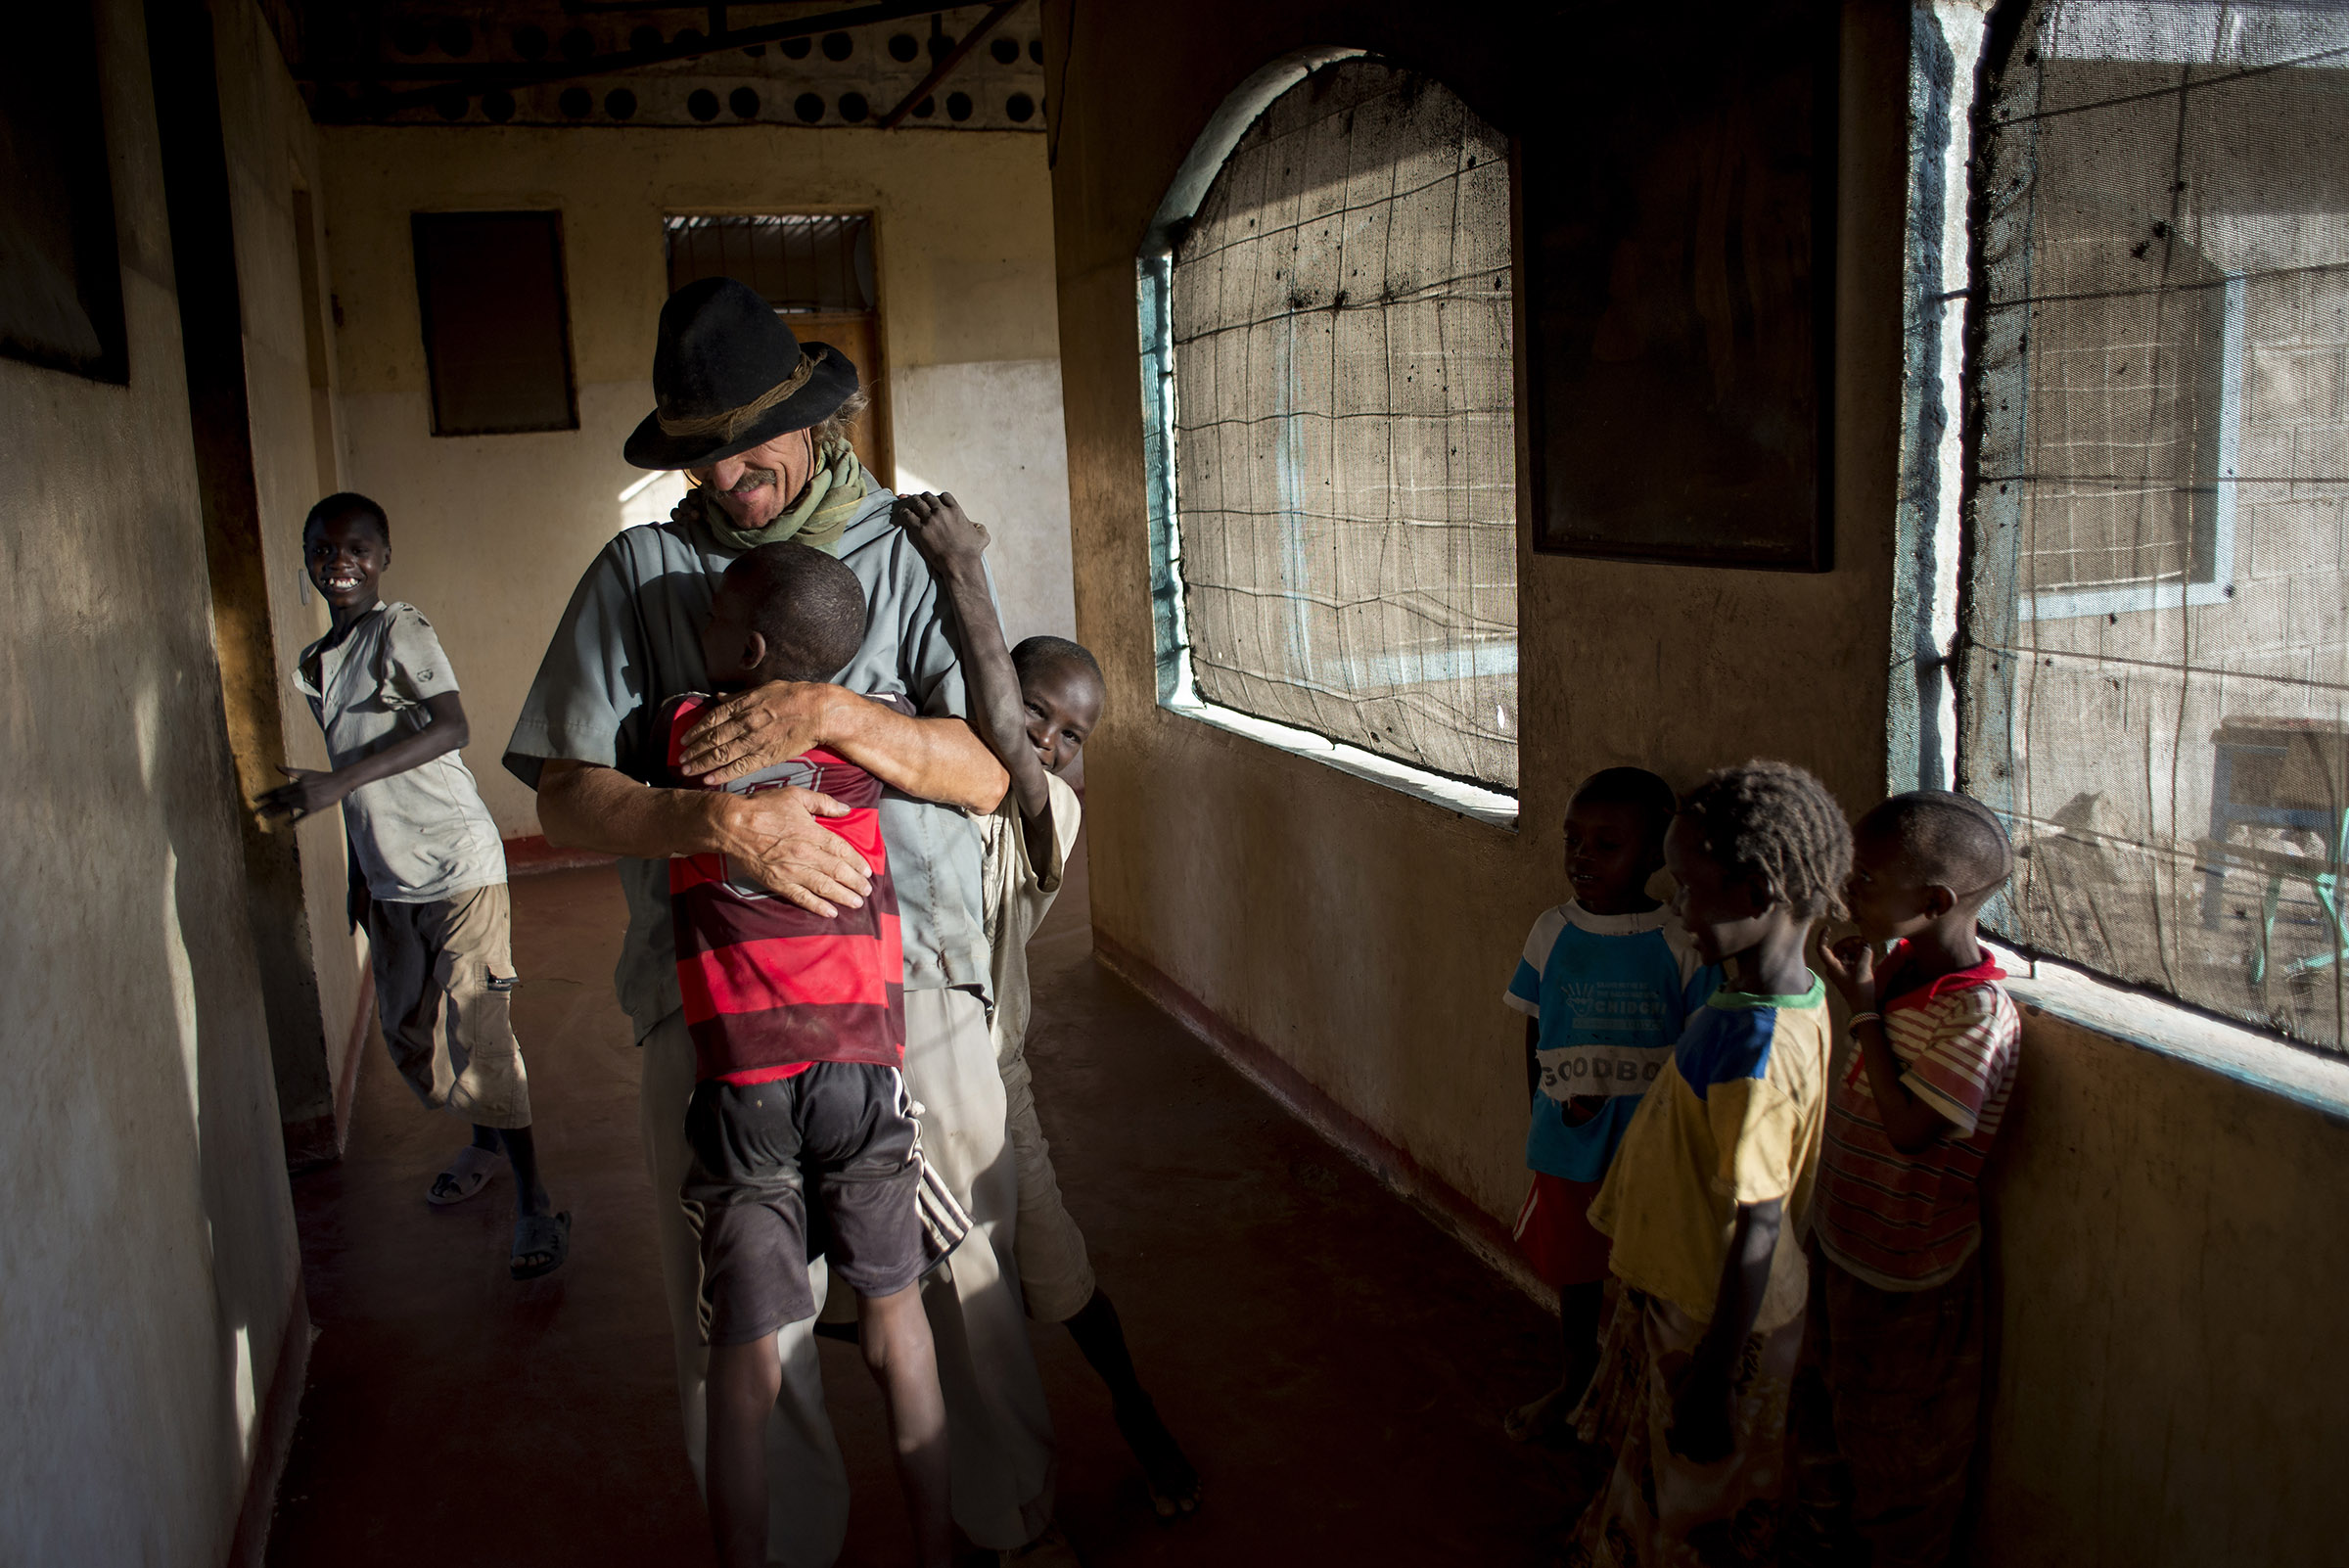 Father Florian is greeted by children after returning to Illeret, Kenya from a recent trip to Nairobi. The distance between the two cities is about 1000 km and takes almost three days to travel. (Christena Dowsett/The GroundTruth Project)